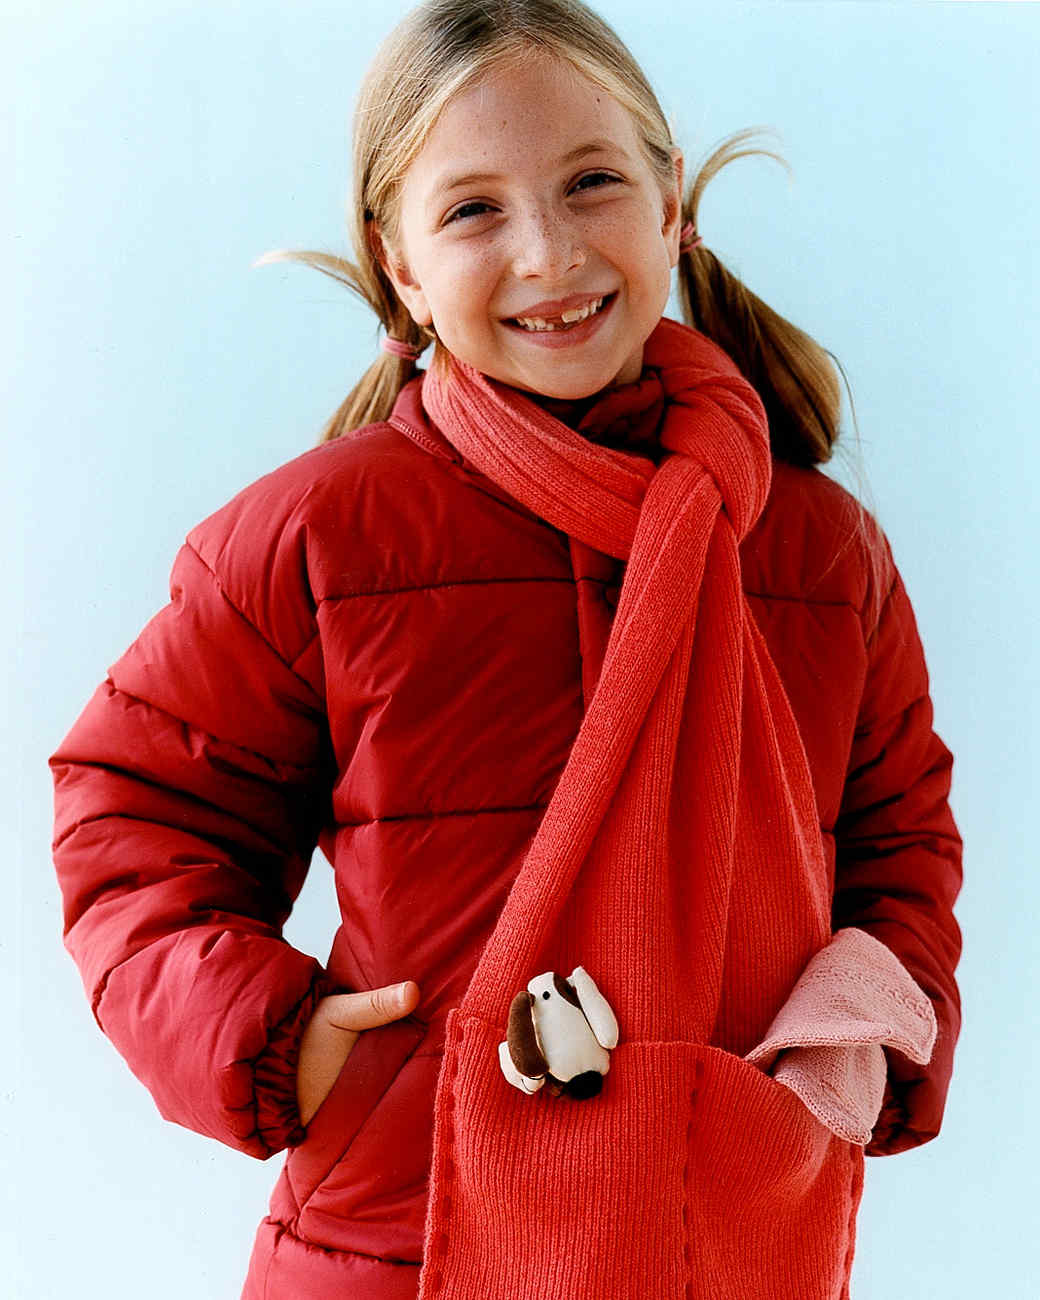 0206_kids_gtpocketscarf.jpg